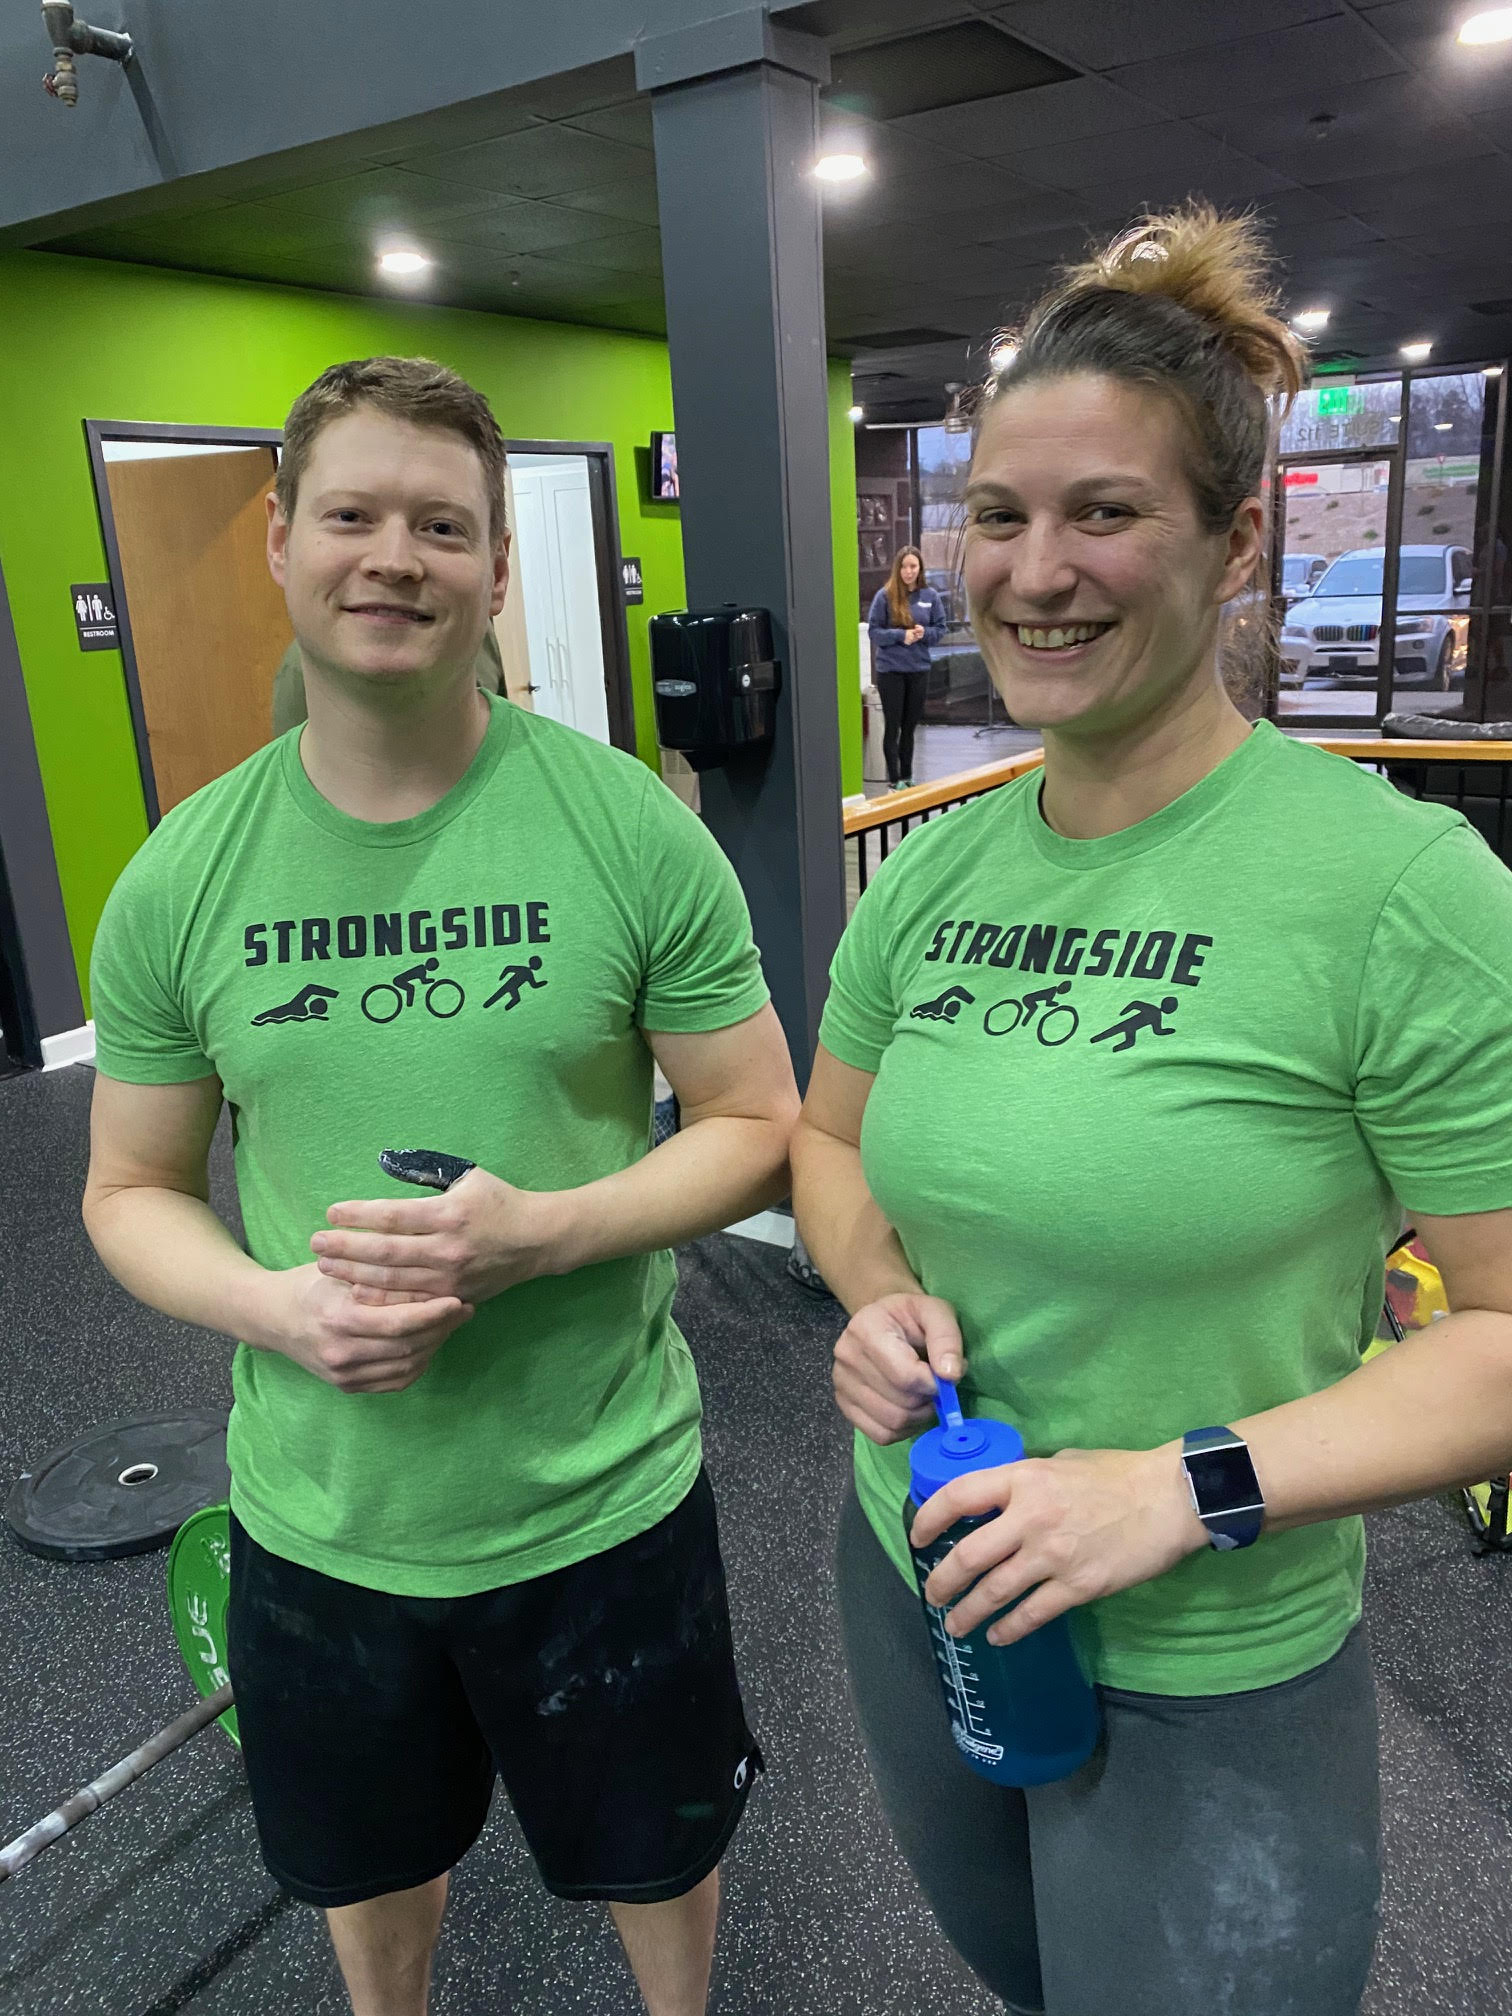 STRONGSIDE 45: Feb 3rd – 9th 2020